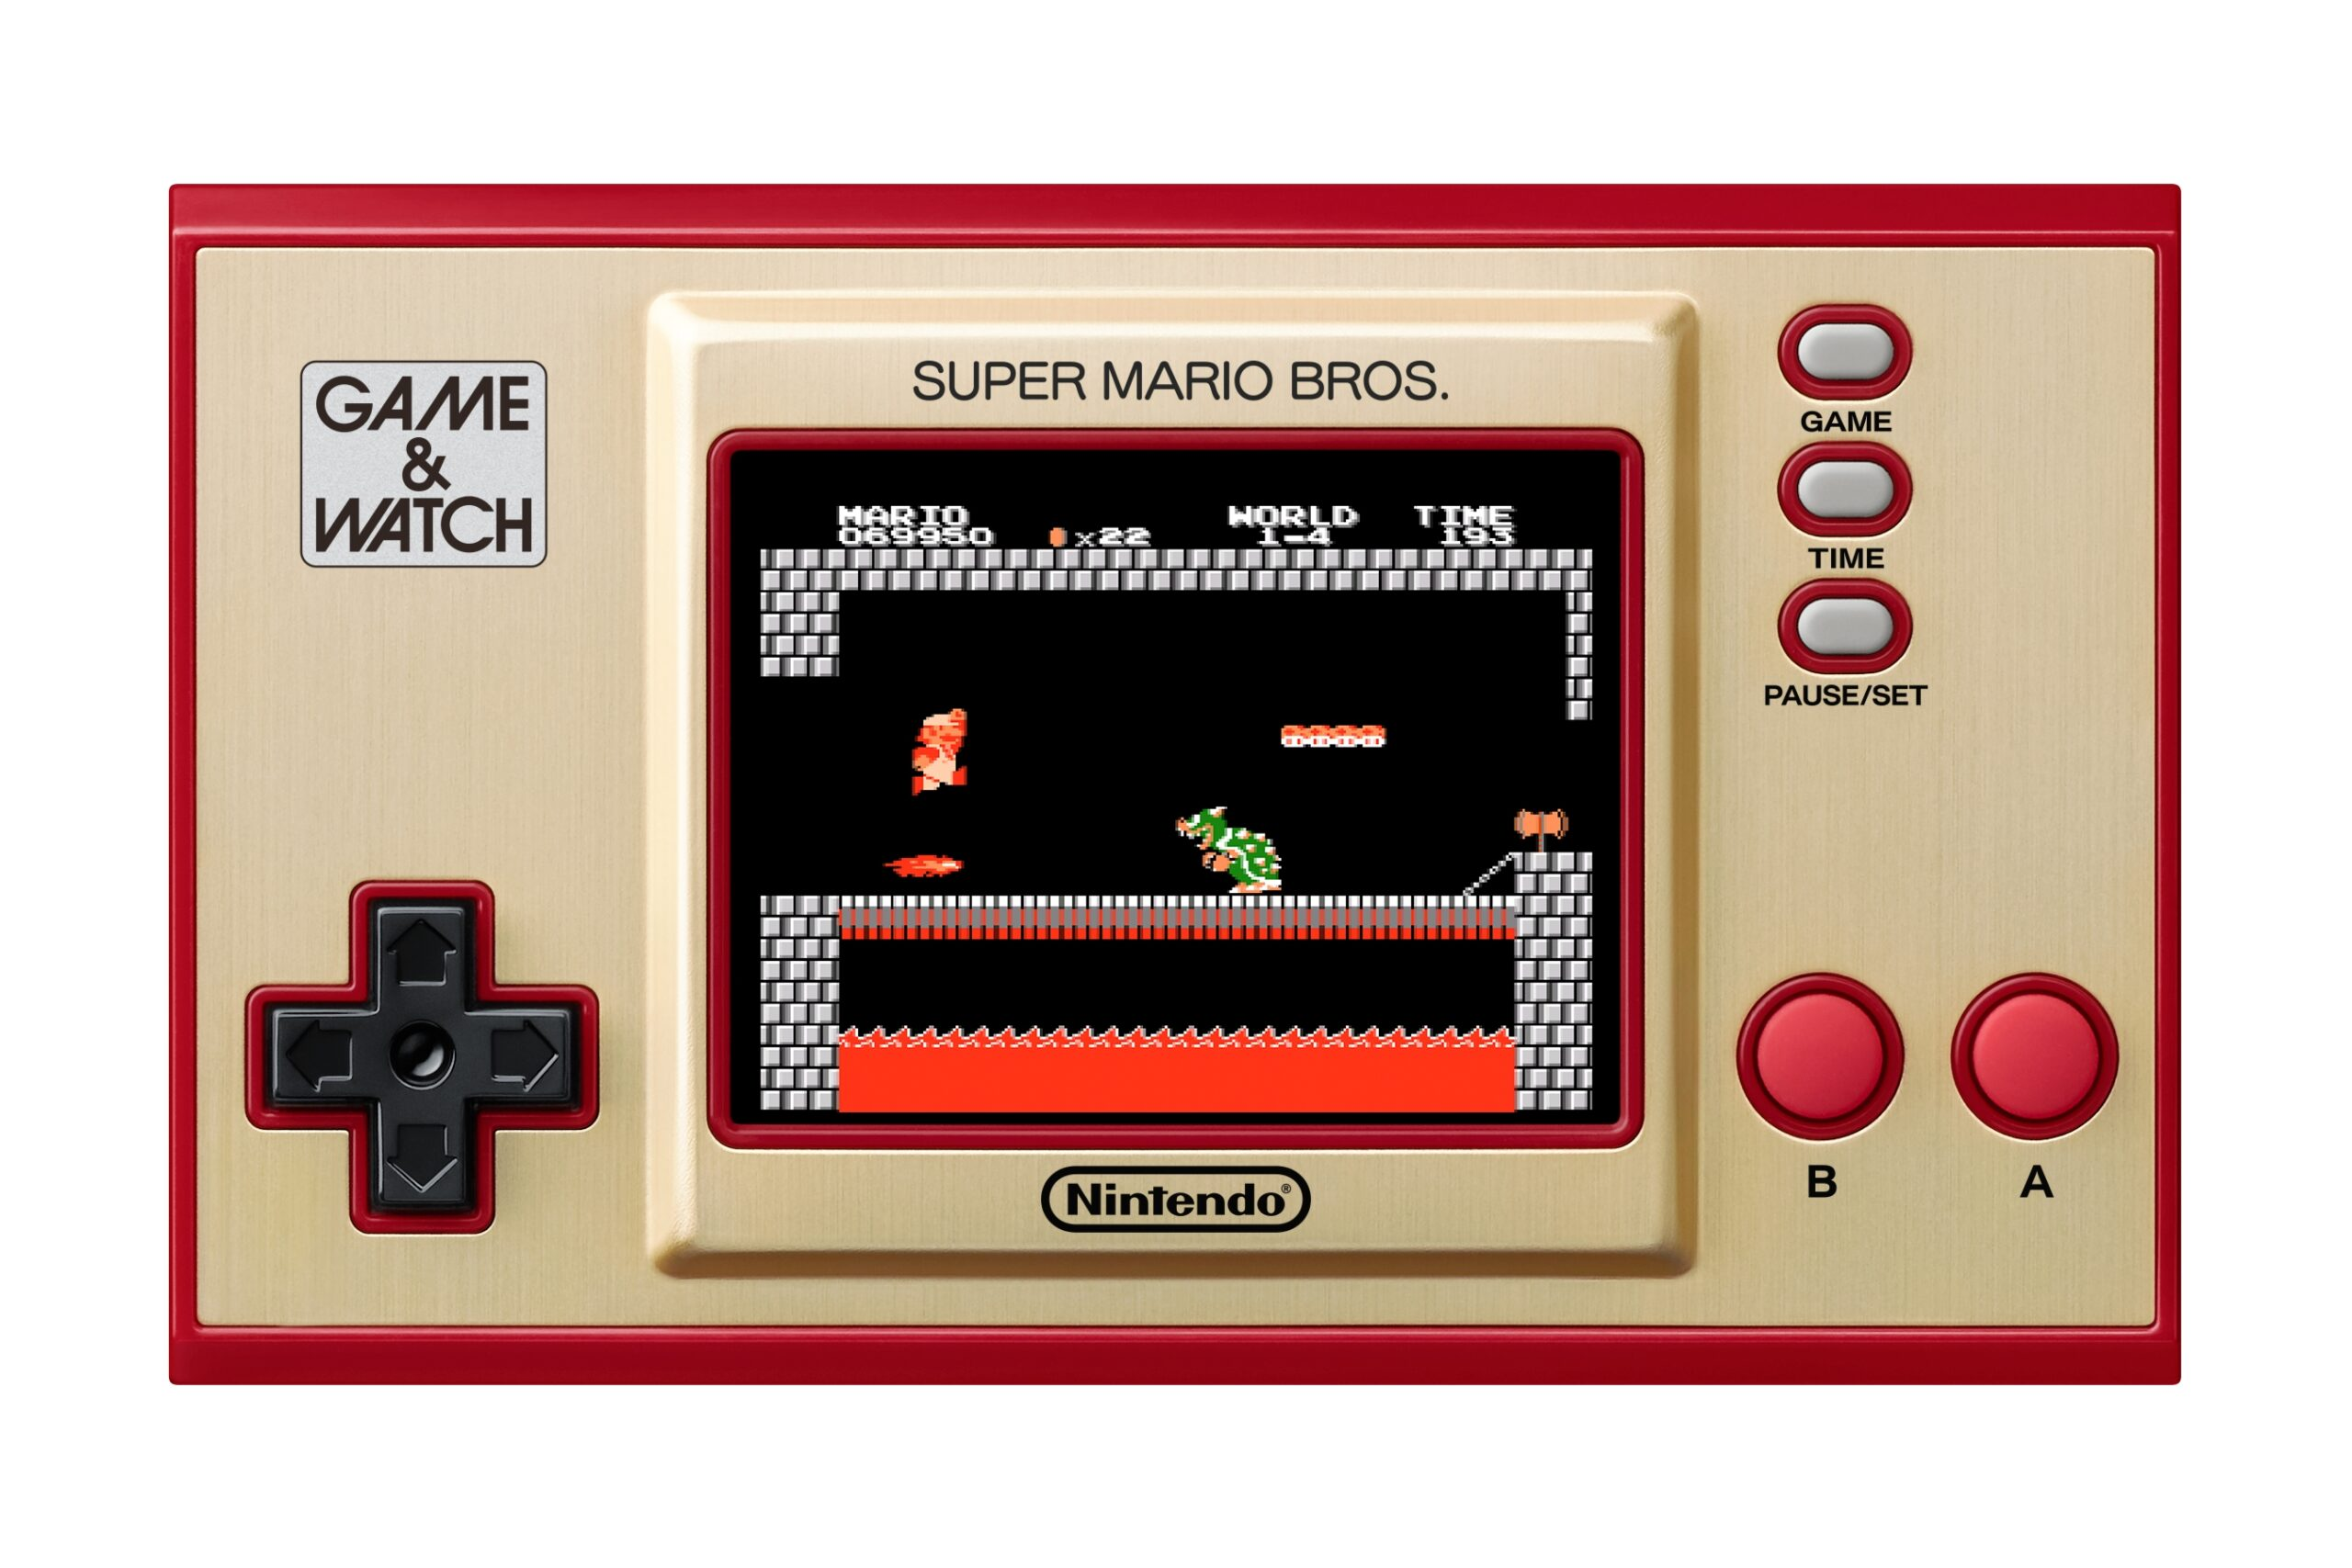 Game-and-Watch-Super-Mario-Bros_2020_09-03-20_014